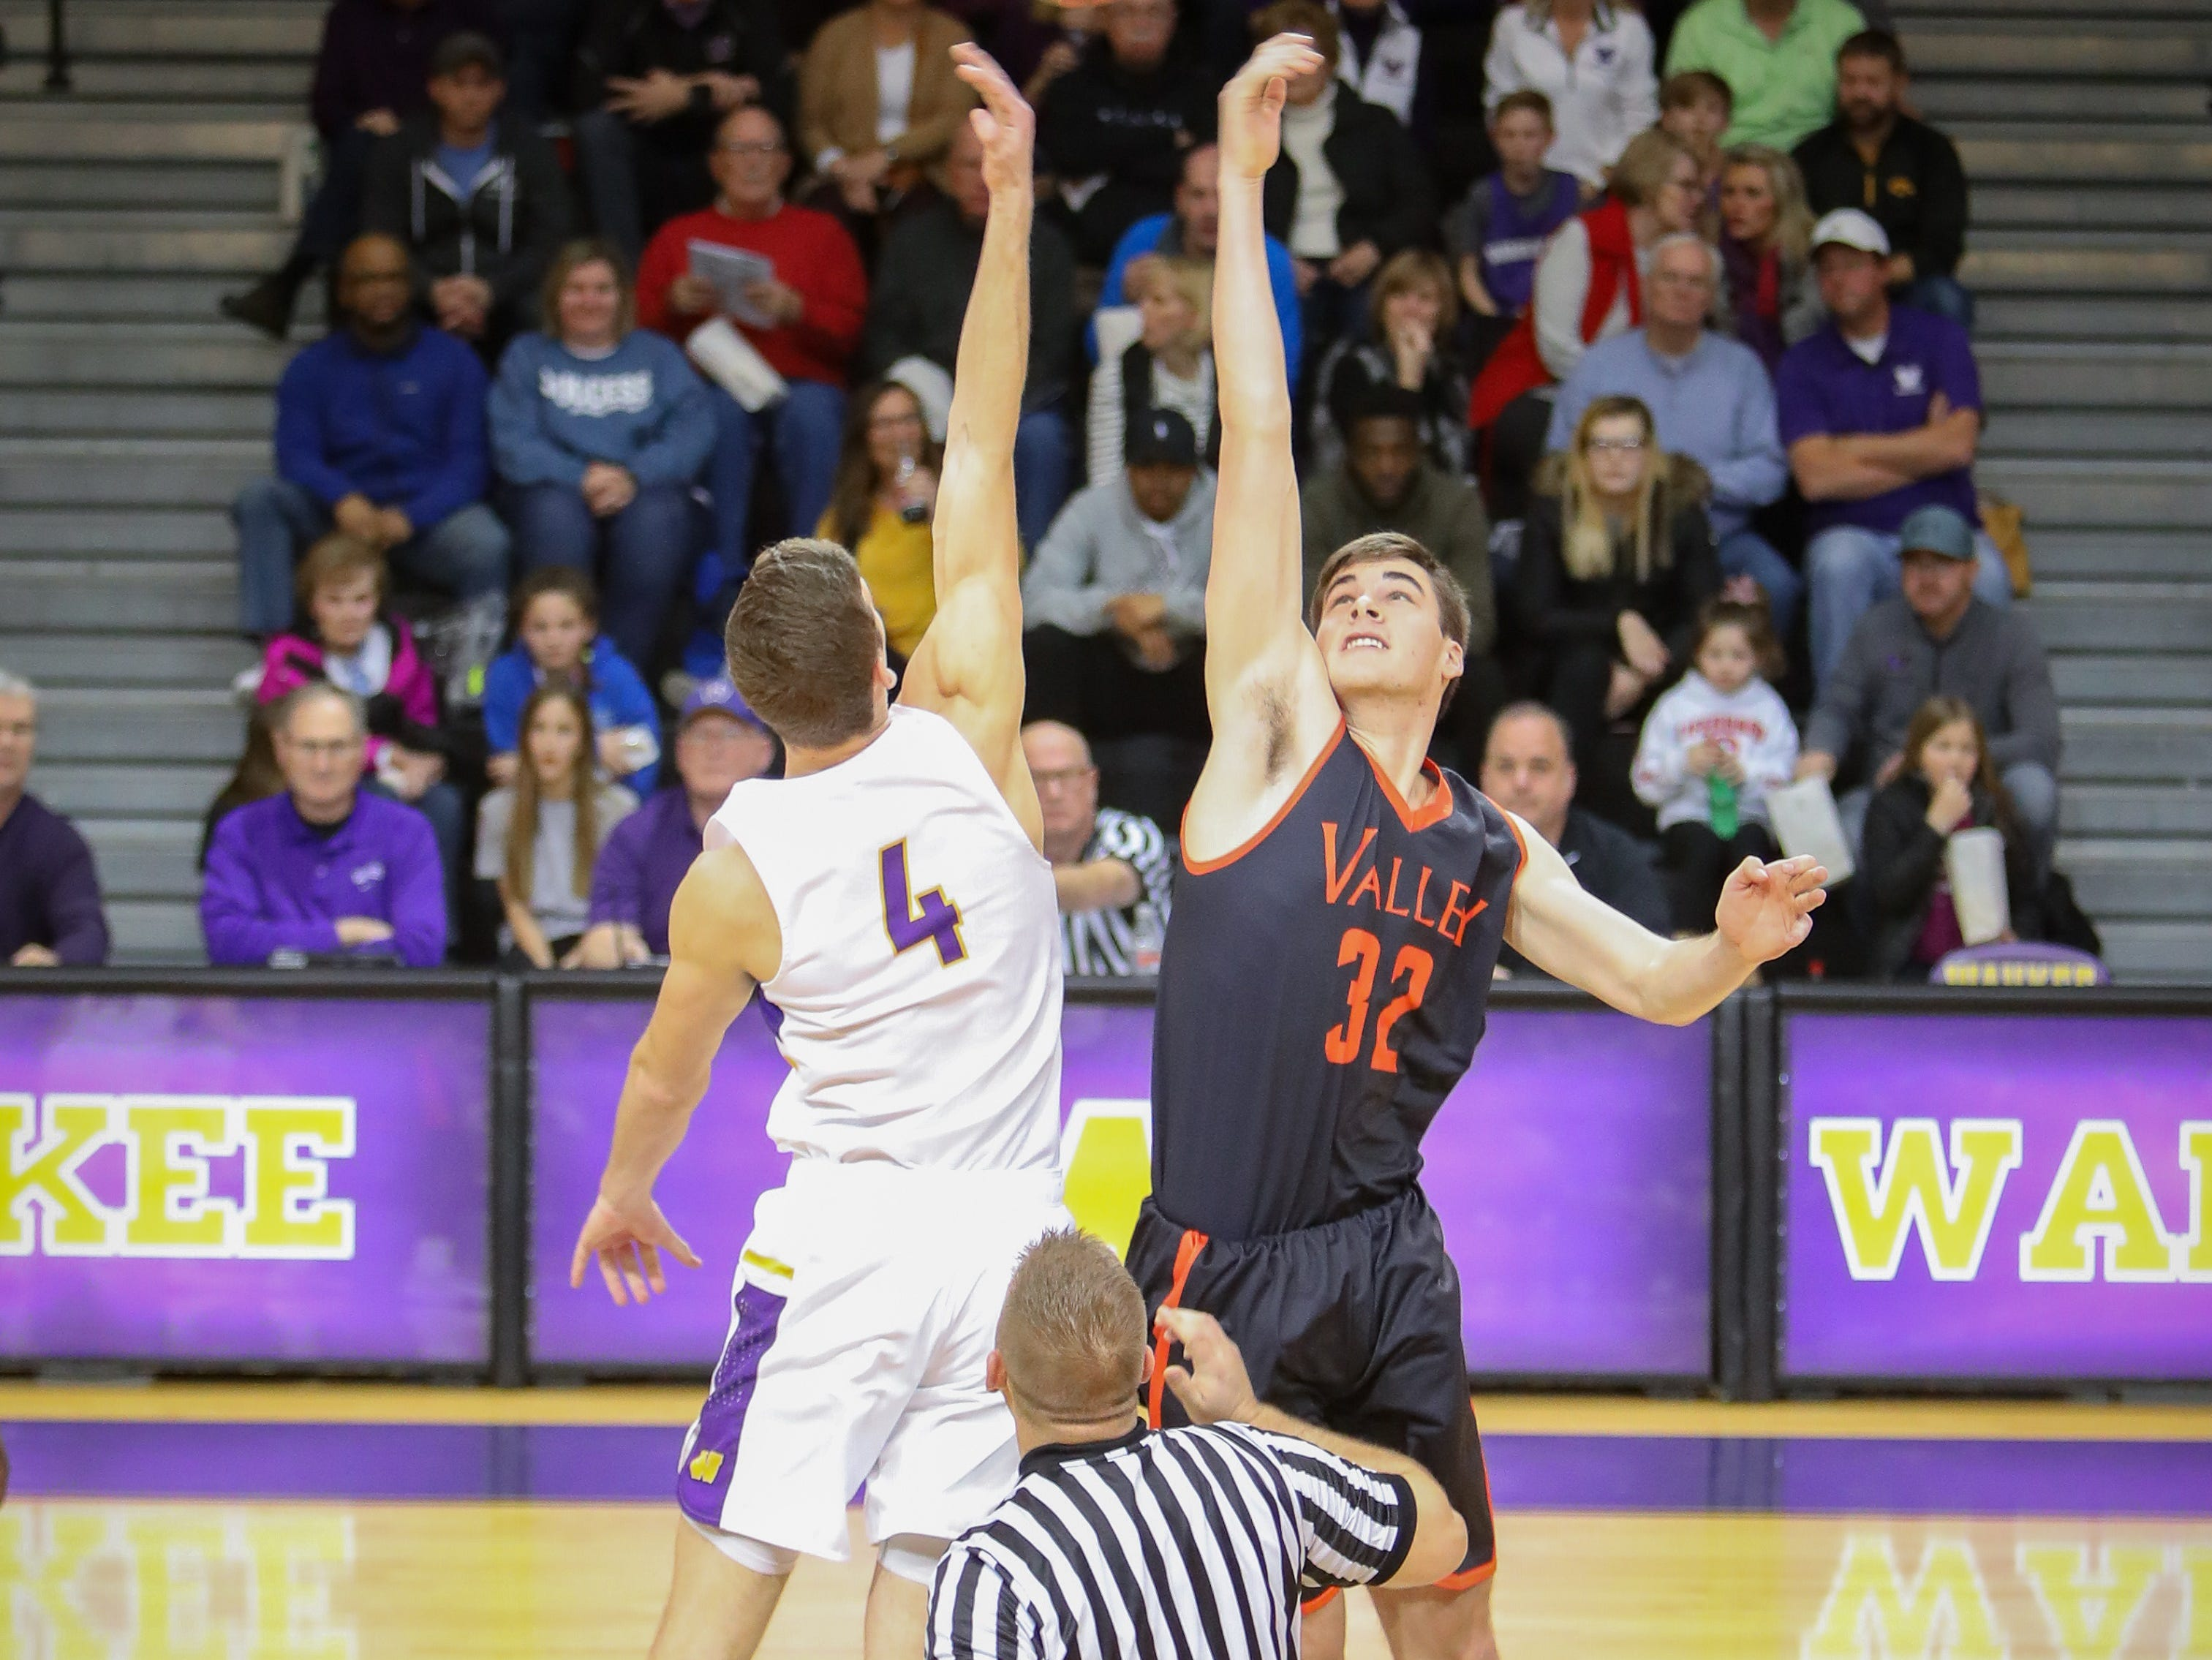 Waukee senior Dylan Jones and Valley junior Will Berg go for the tip-off during a boys high school basketball game between the Valley Tigers and the Waukee Warriors at Waukee High School on Dec. 14, 2018 in Waukee, Iowa.